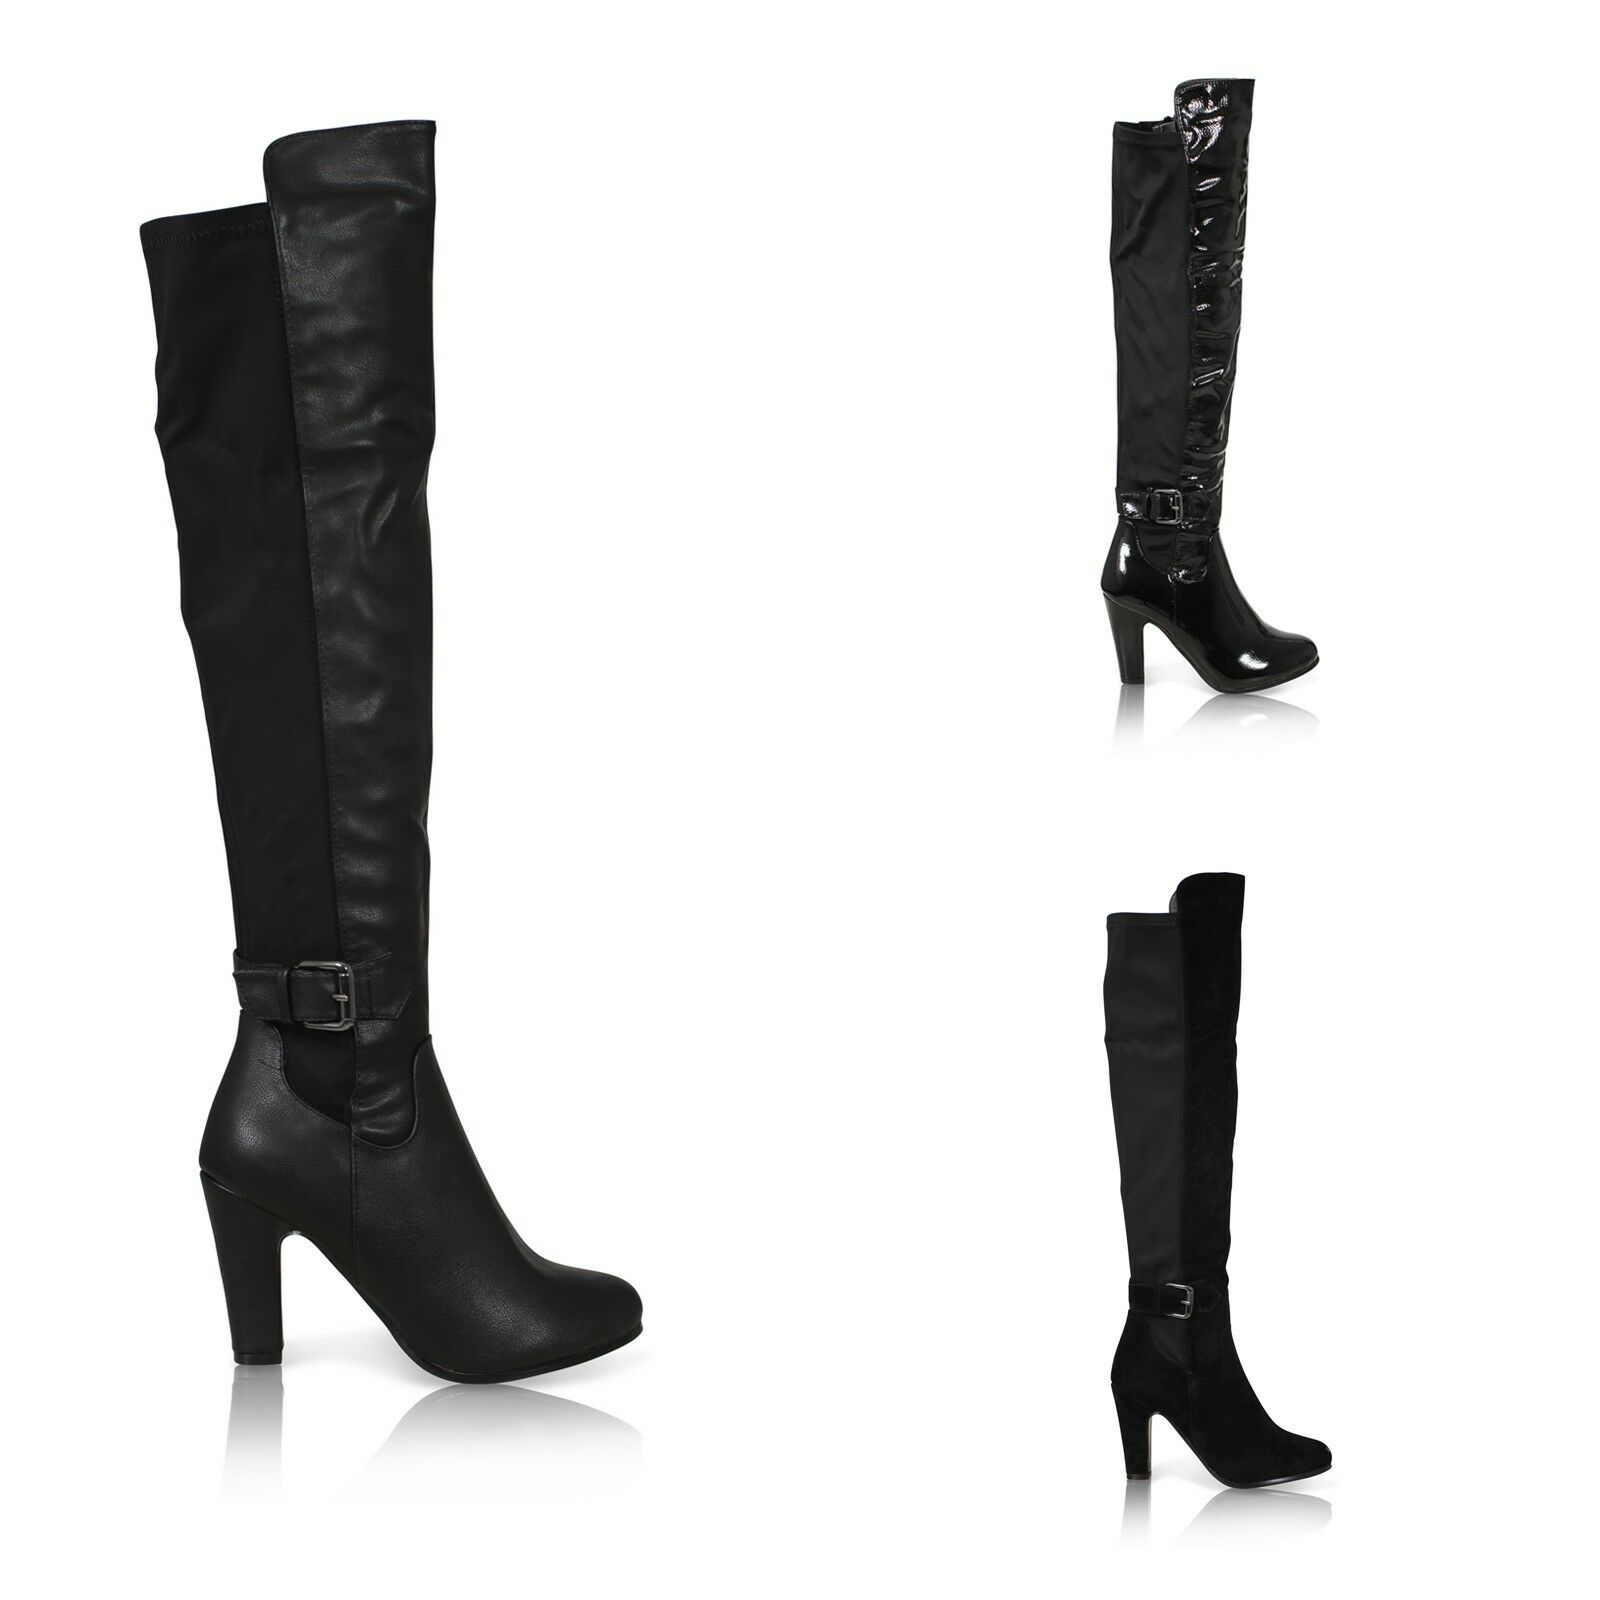 WOMENS LADIES ZIP UP OVER THE KNEE STRETCH RIDING BUCKLE HIGH HEEL BOOTS SHOES S